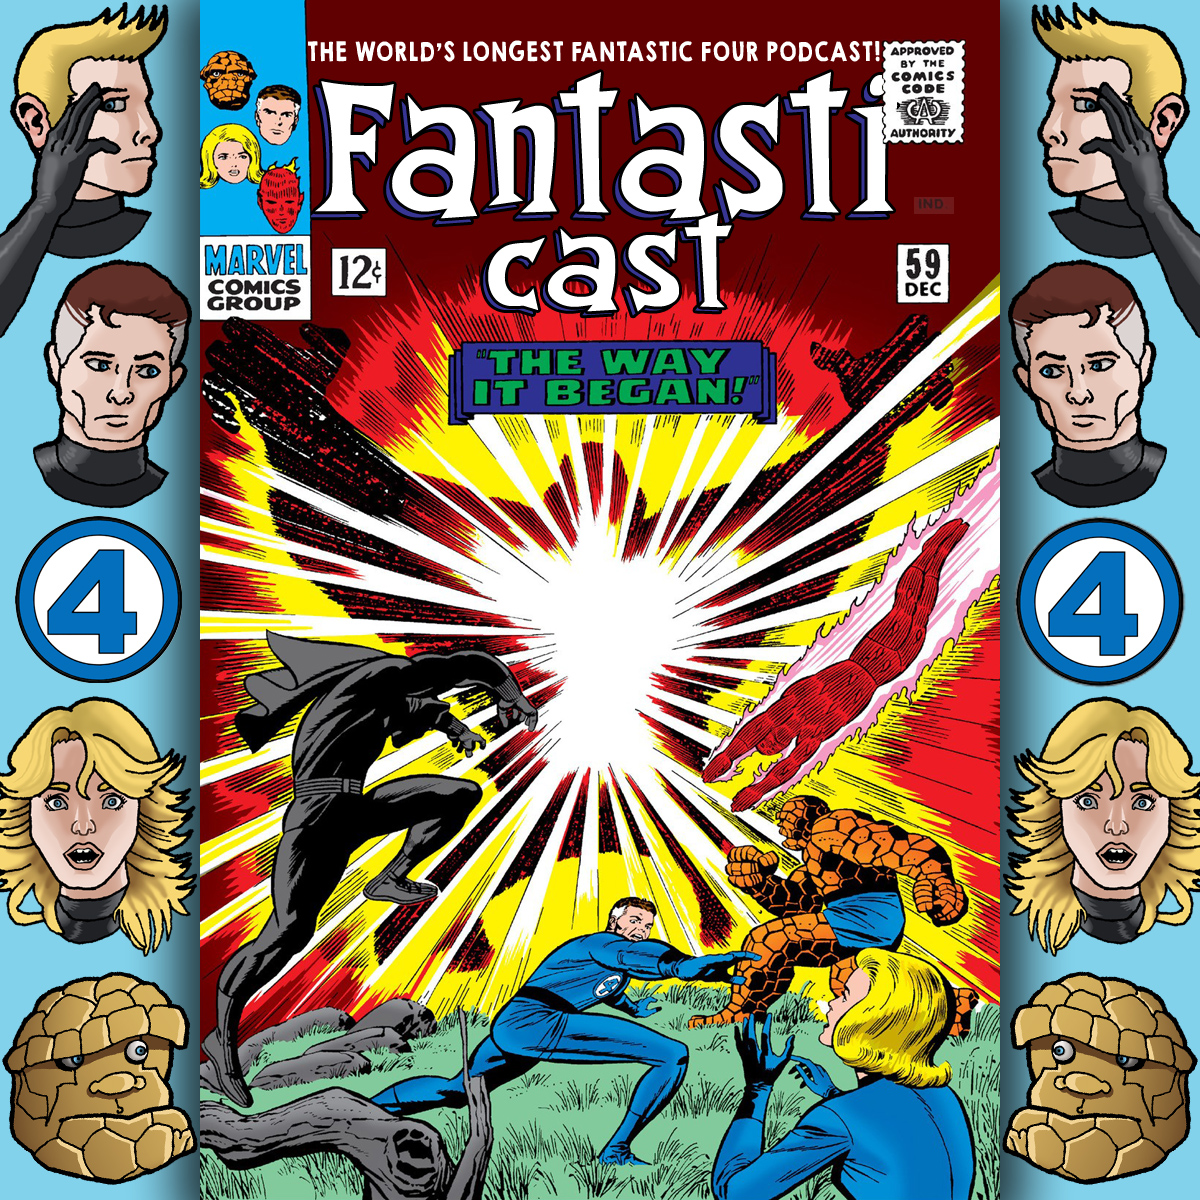 Episode 59: Fantastic Four #53 - The Way It Began